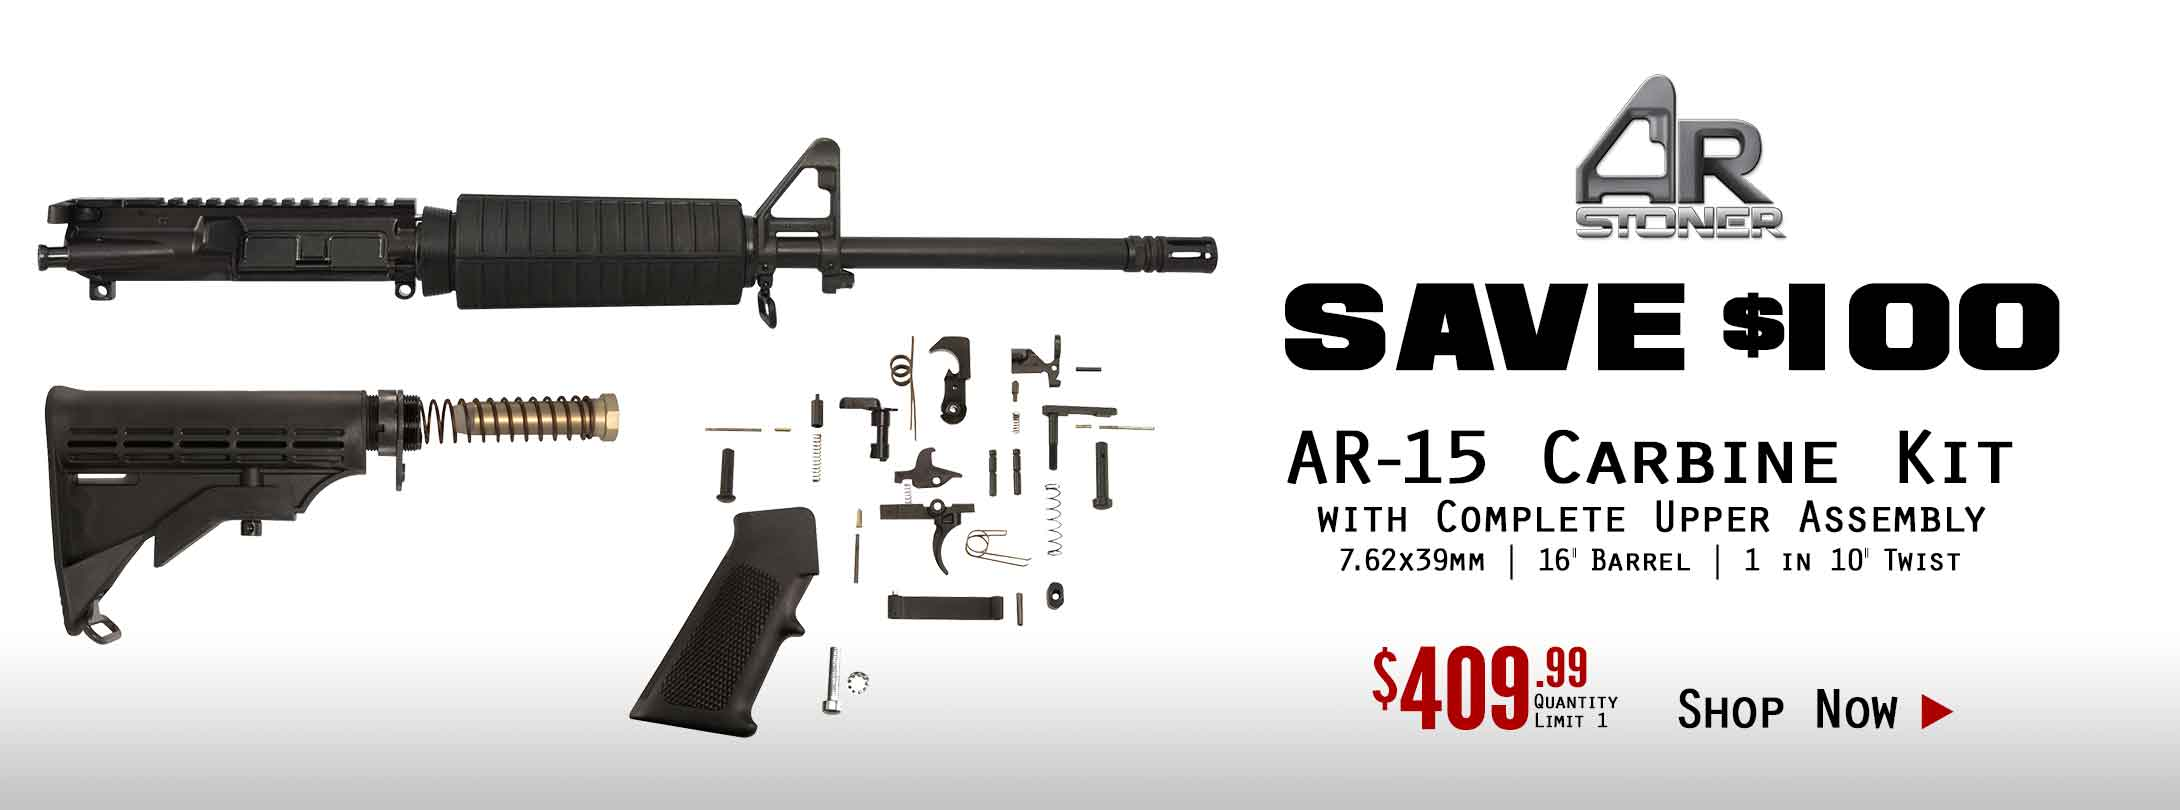 48 Hr Sale - Save $100 on AR-Stoner 7.62x39mm Carbine Kit